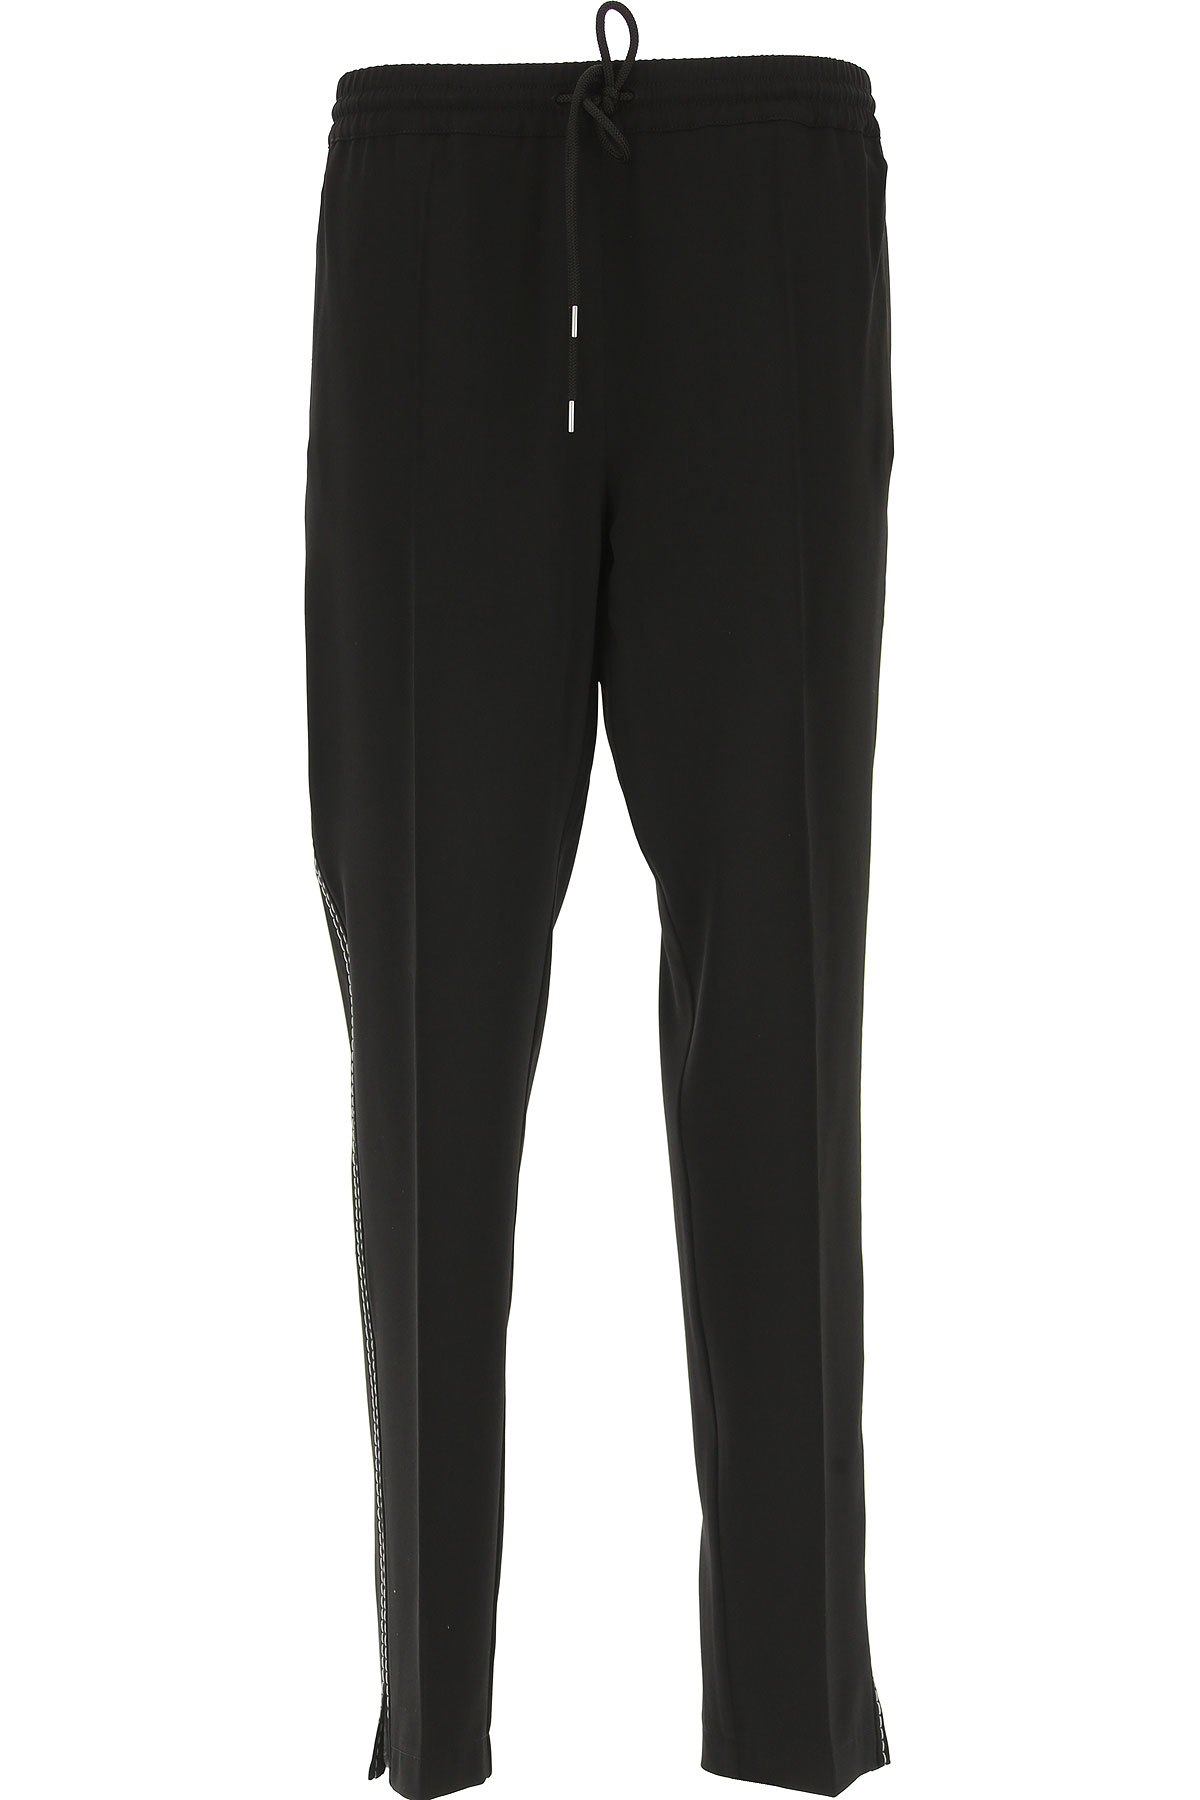 Image of SportMax Pants for Women, Black, polyester, 2017, 26 28 30